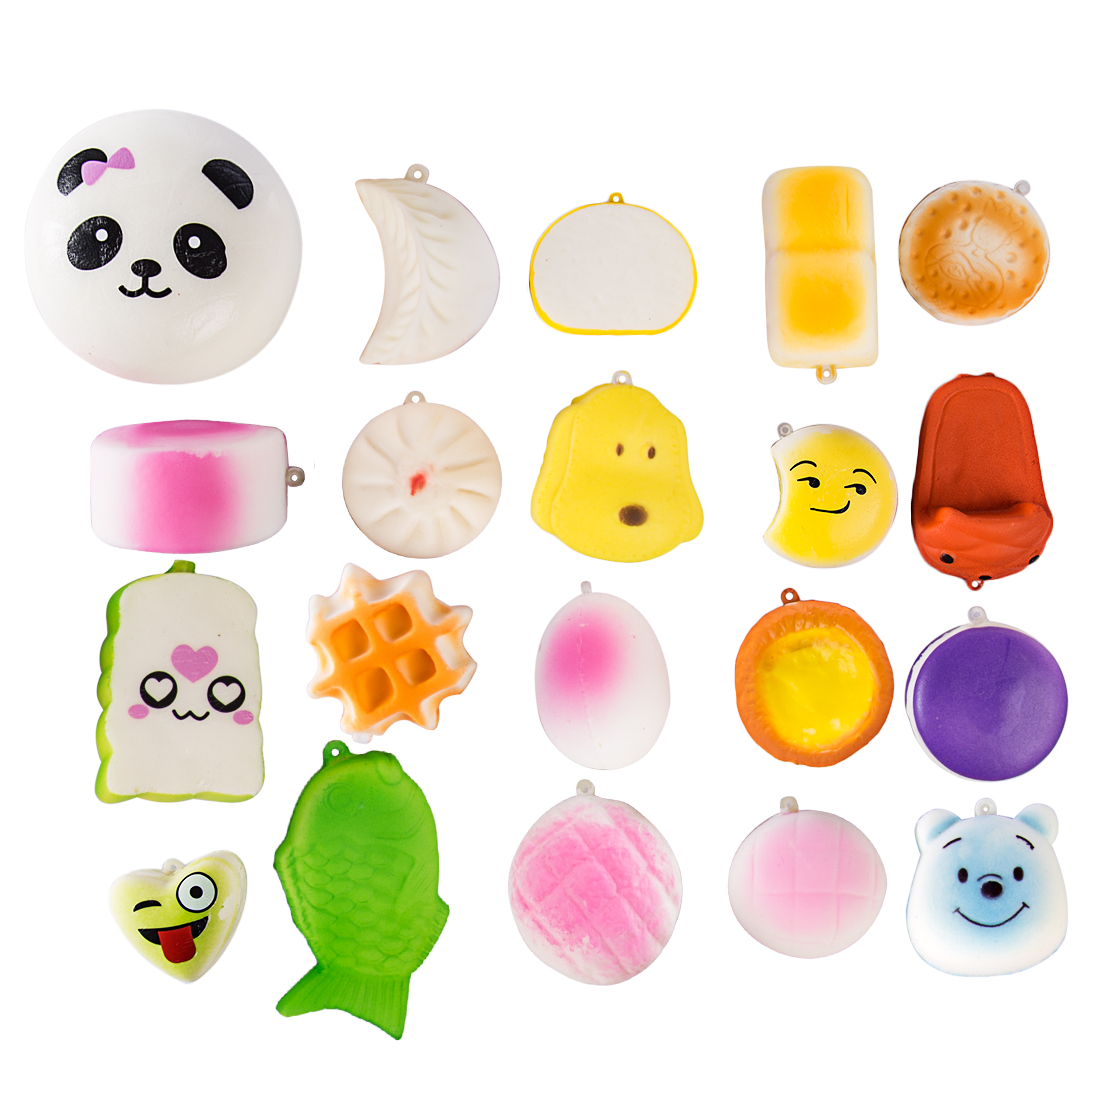 20/30 Pcs Fresh Scent Soft Slow Rebound Squish Decompression Learning Toys For Children Set - Random Assortment